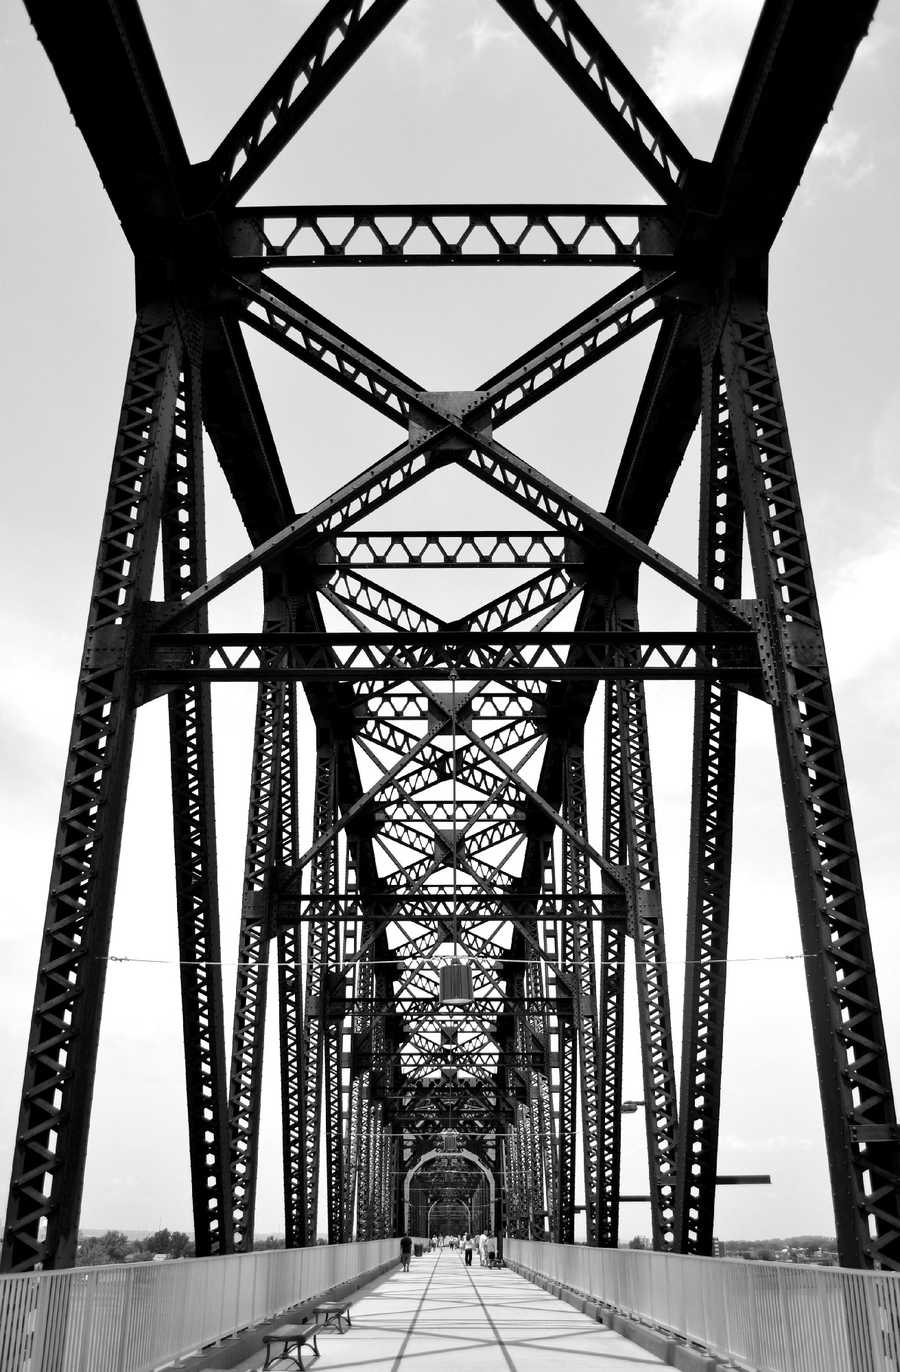 Walk across the Ohio River: Spanning a total of 1.42 miles, from Kentucky to Indiana, the newly renovated walking bridge has been a big hit among thousands of pedestrians and athletes.Location: The Big Four Bridge, Louisville, KY 40206